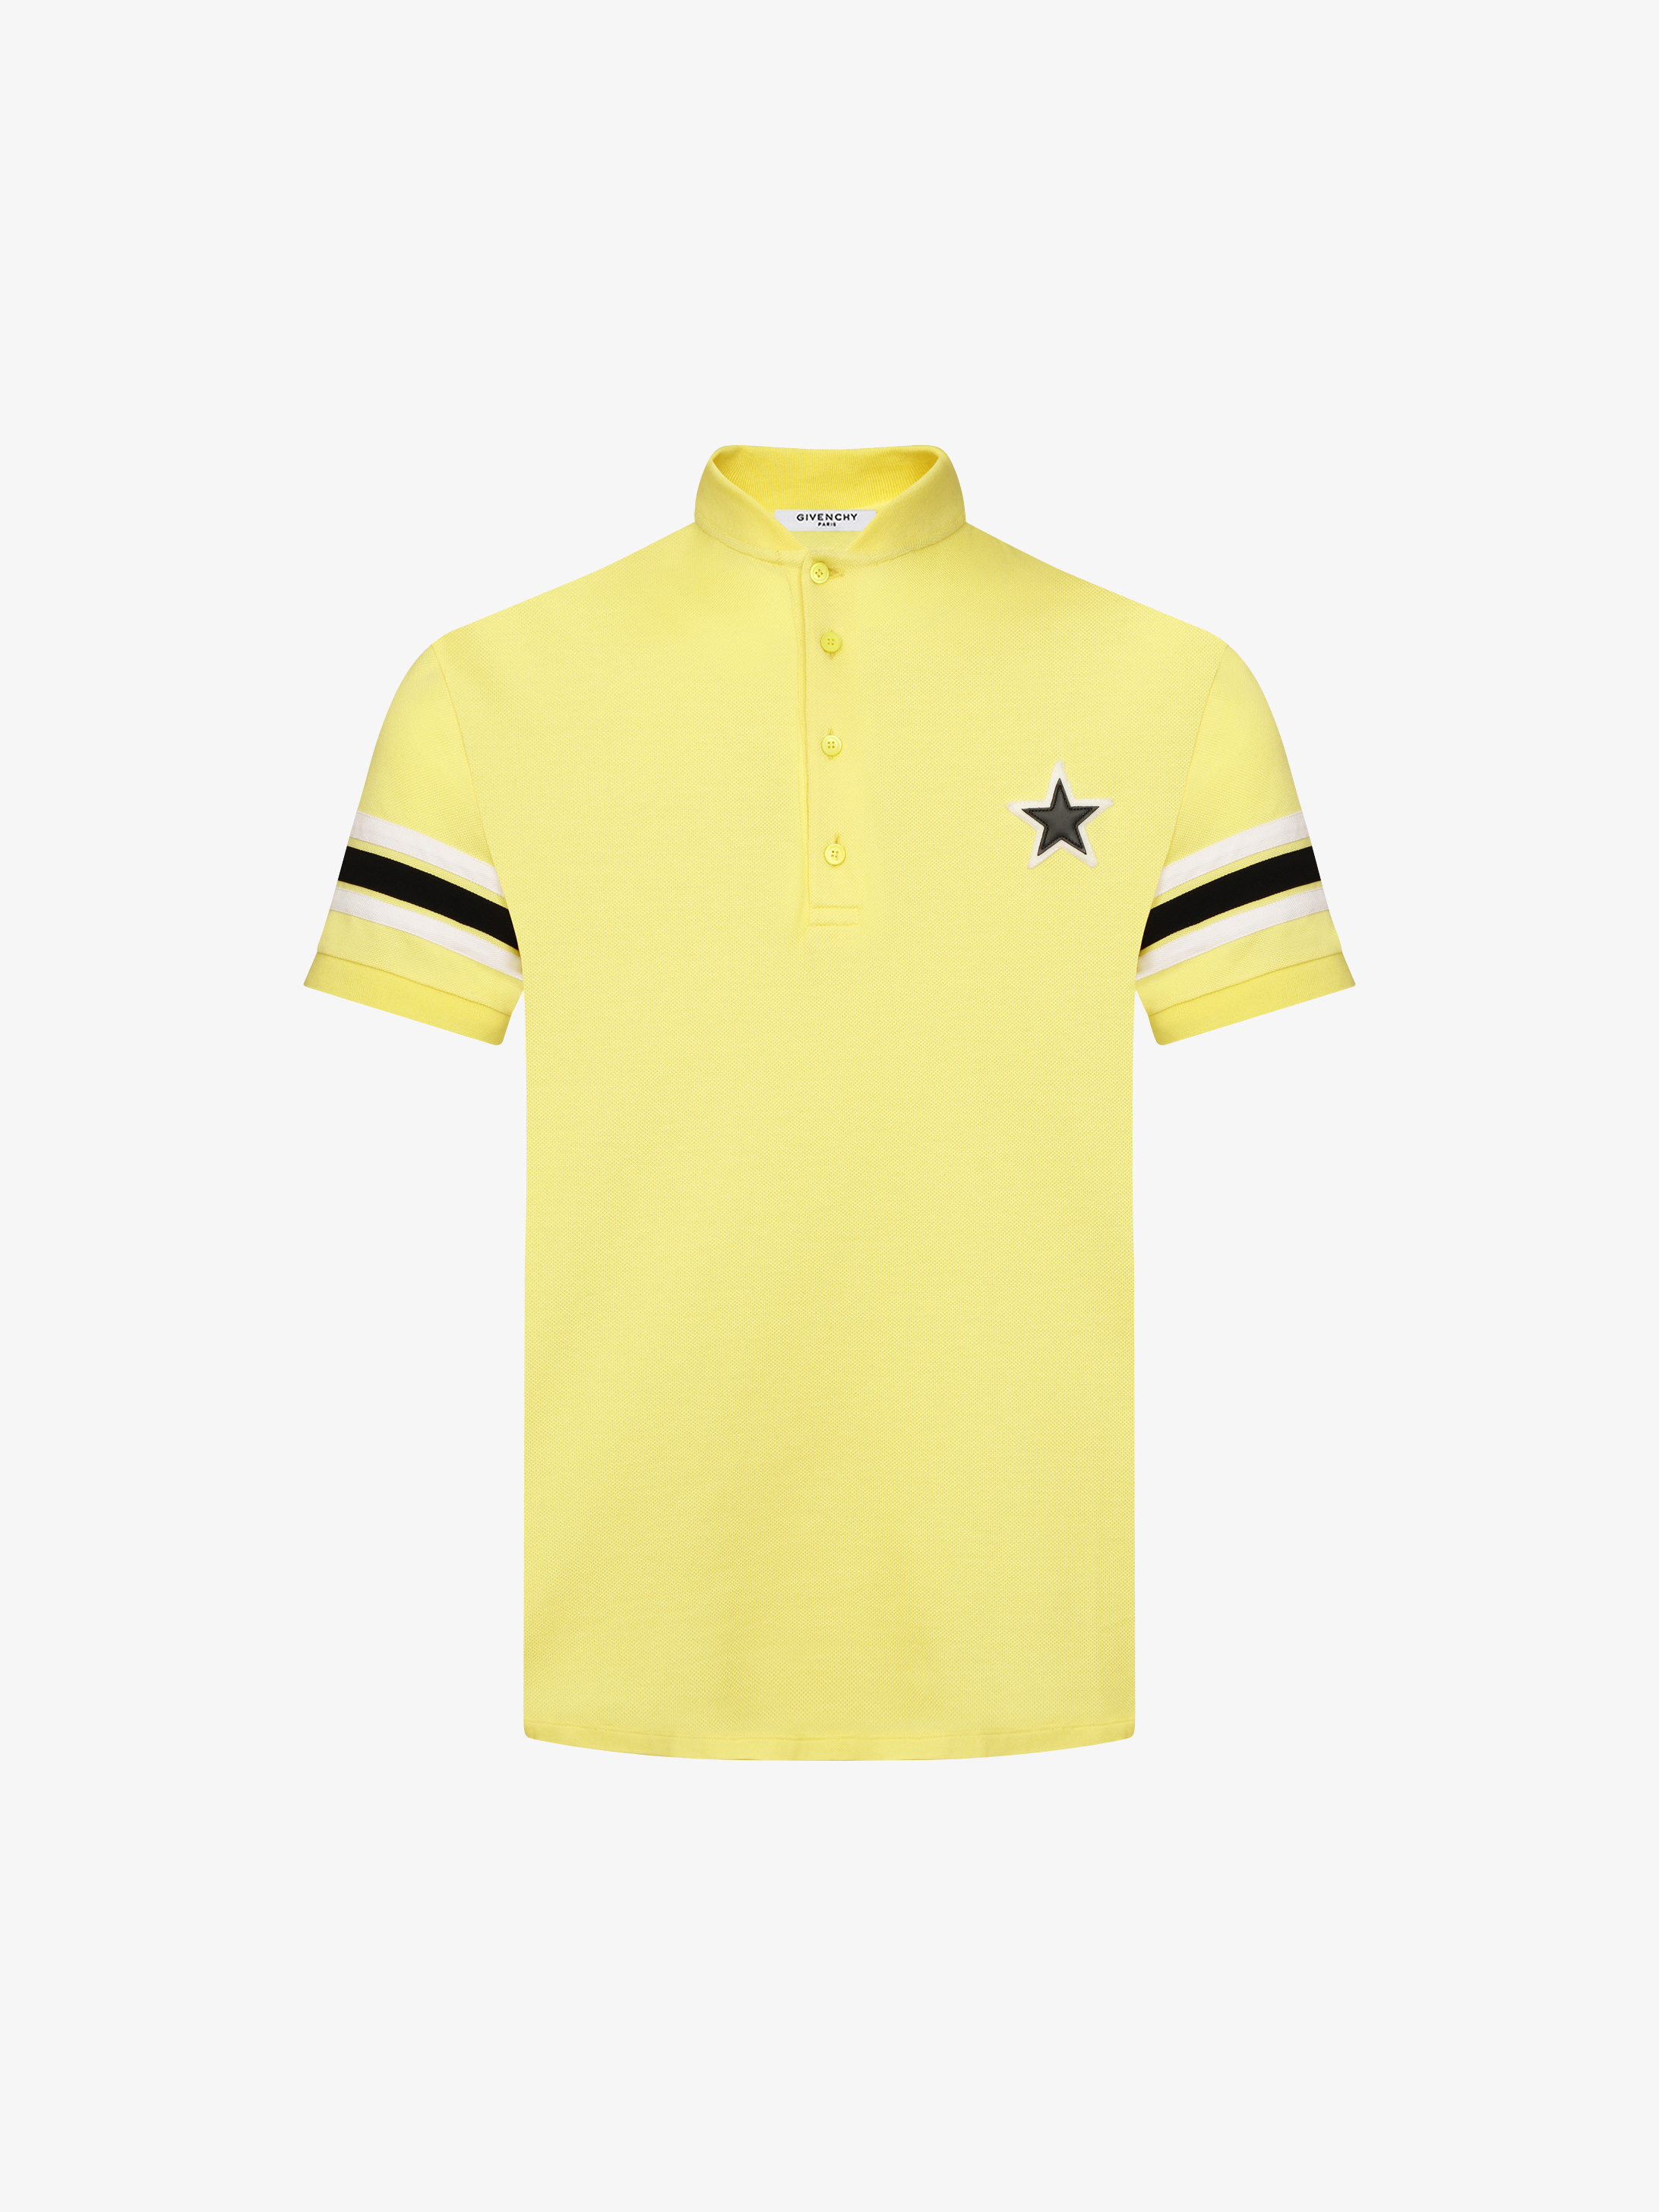 Polo with geometric design